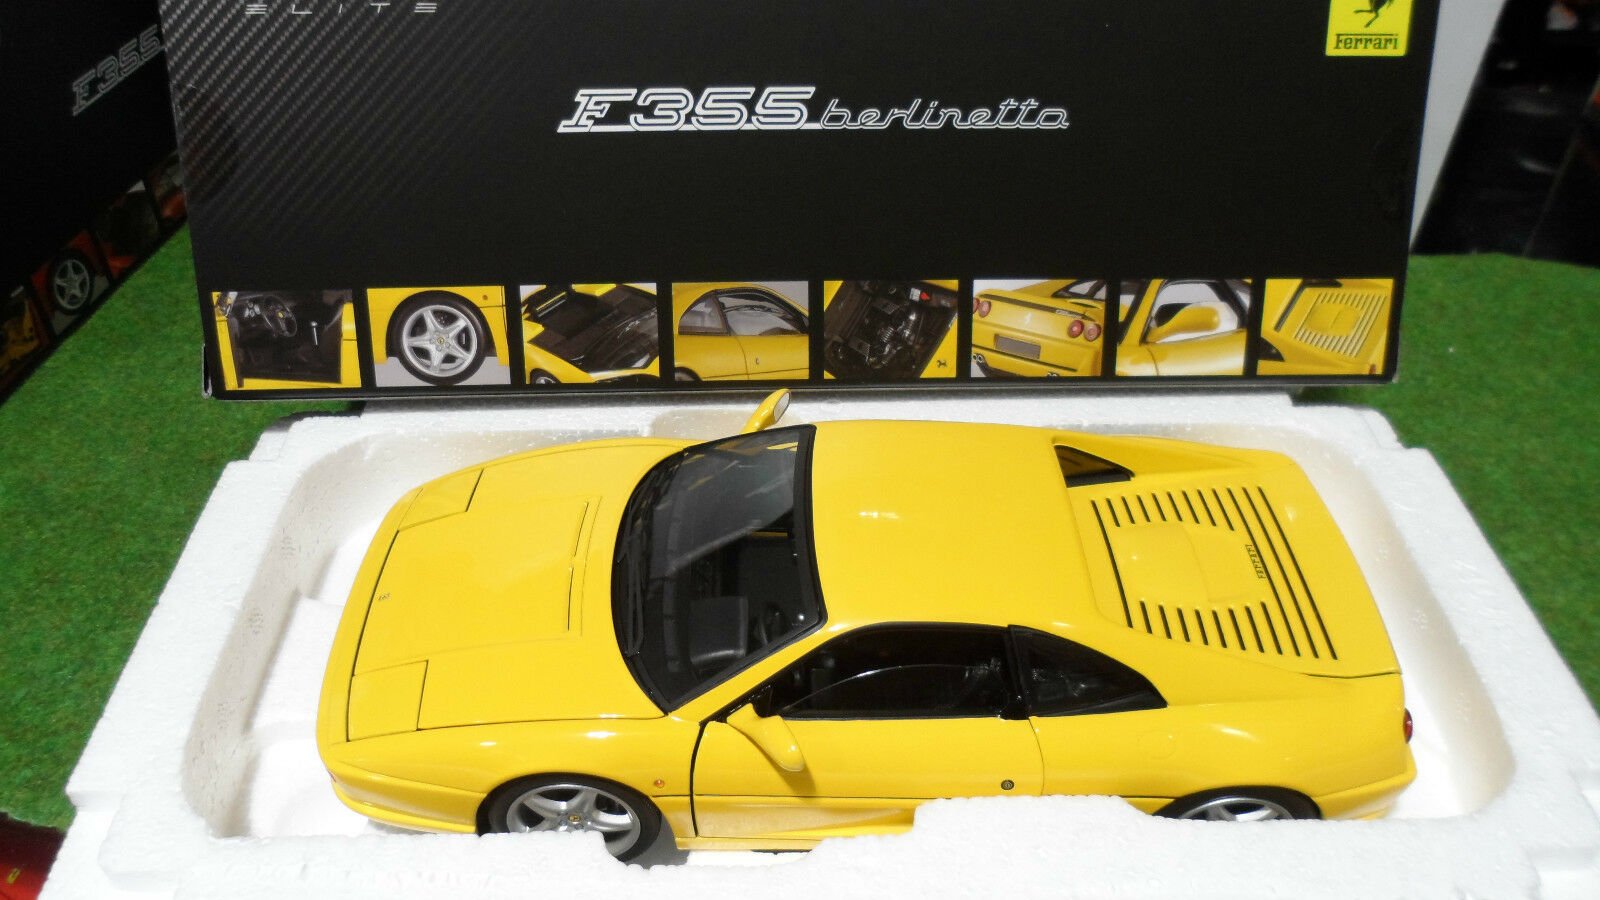 FERRARI F355 BERLINETTA amarillo au 1 18 d ELITE HOT WHEELS X5479 voiture miniature